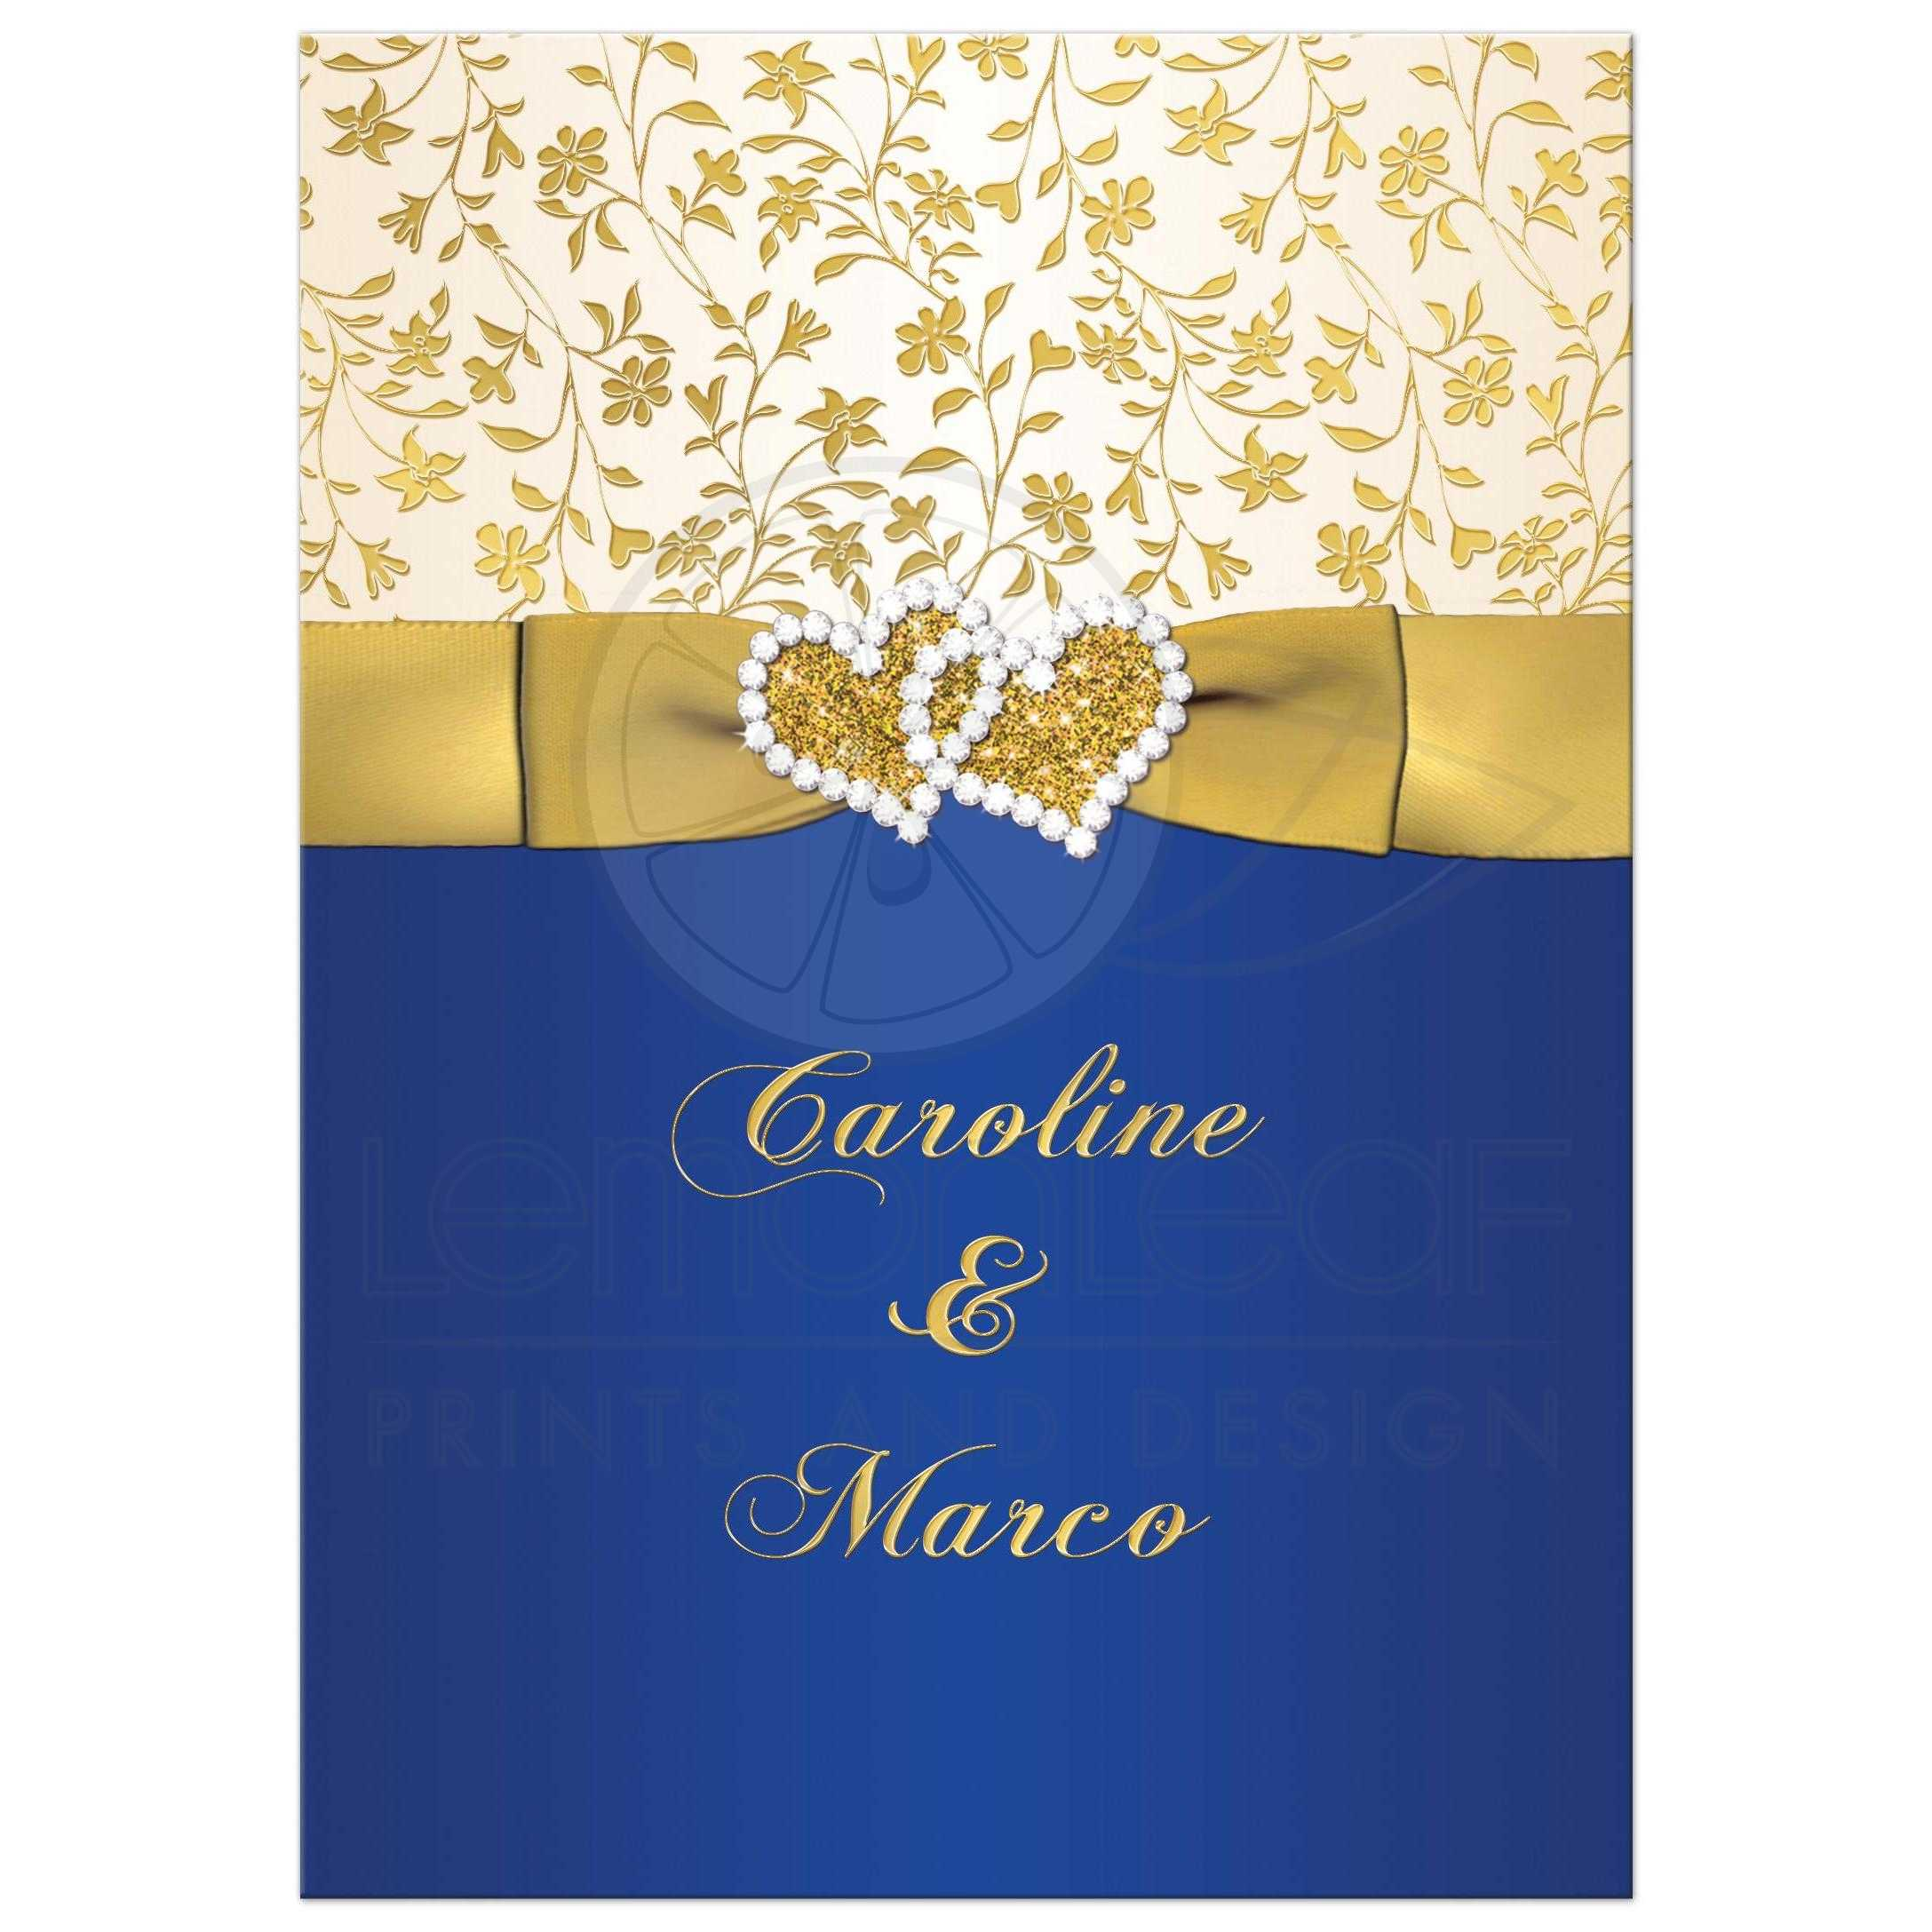 Best 40th Wedding Anniversary Invitation In Royal Blue, Ivory, And Gold  Floral With Ribbon ...